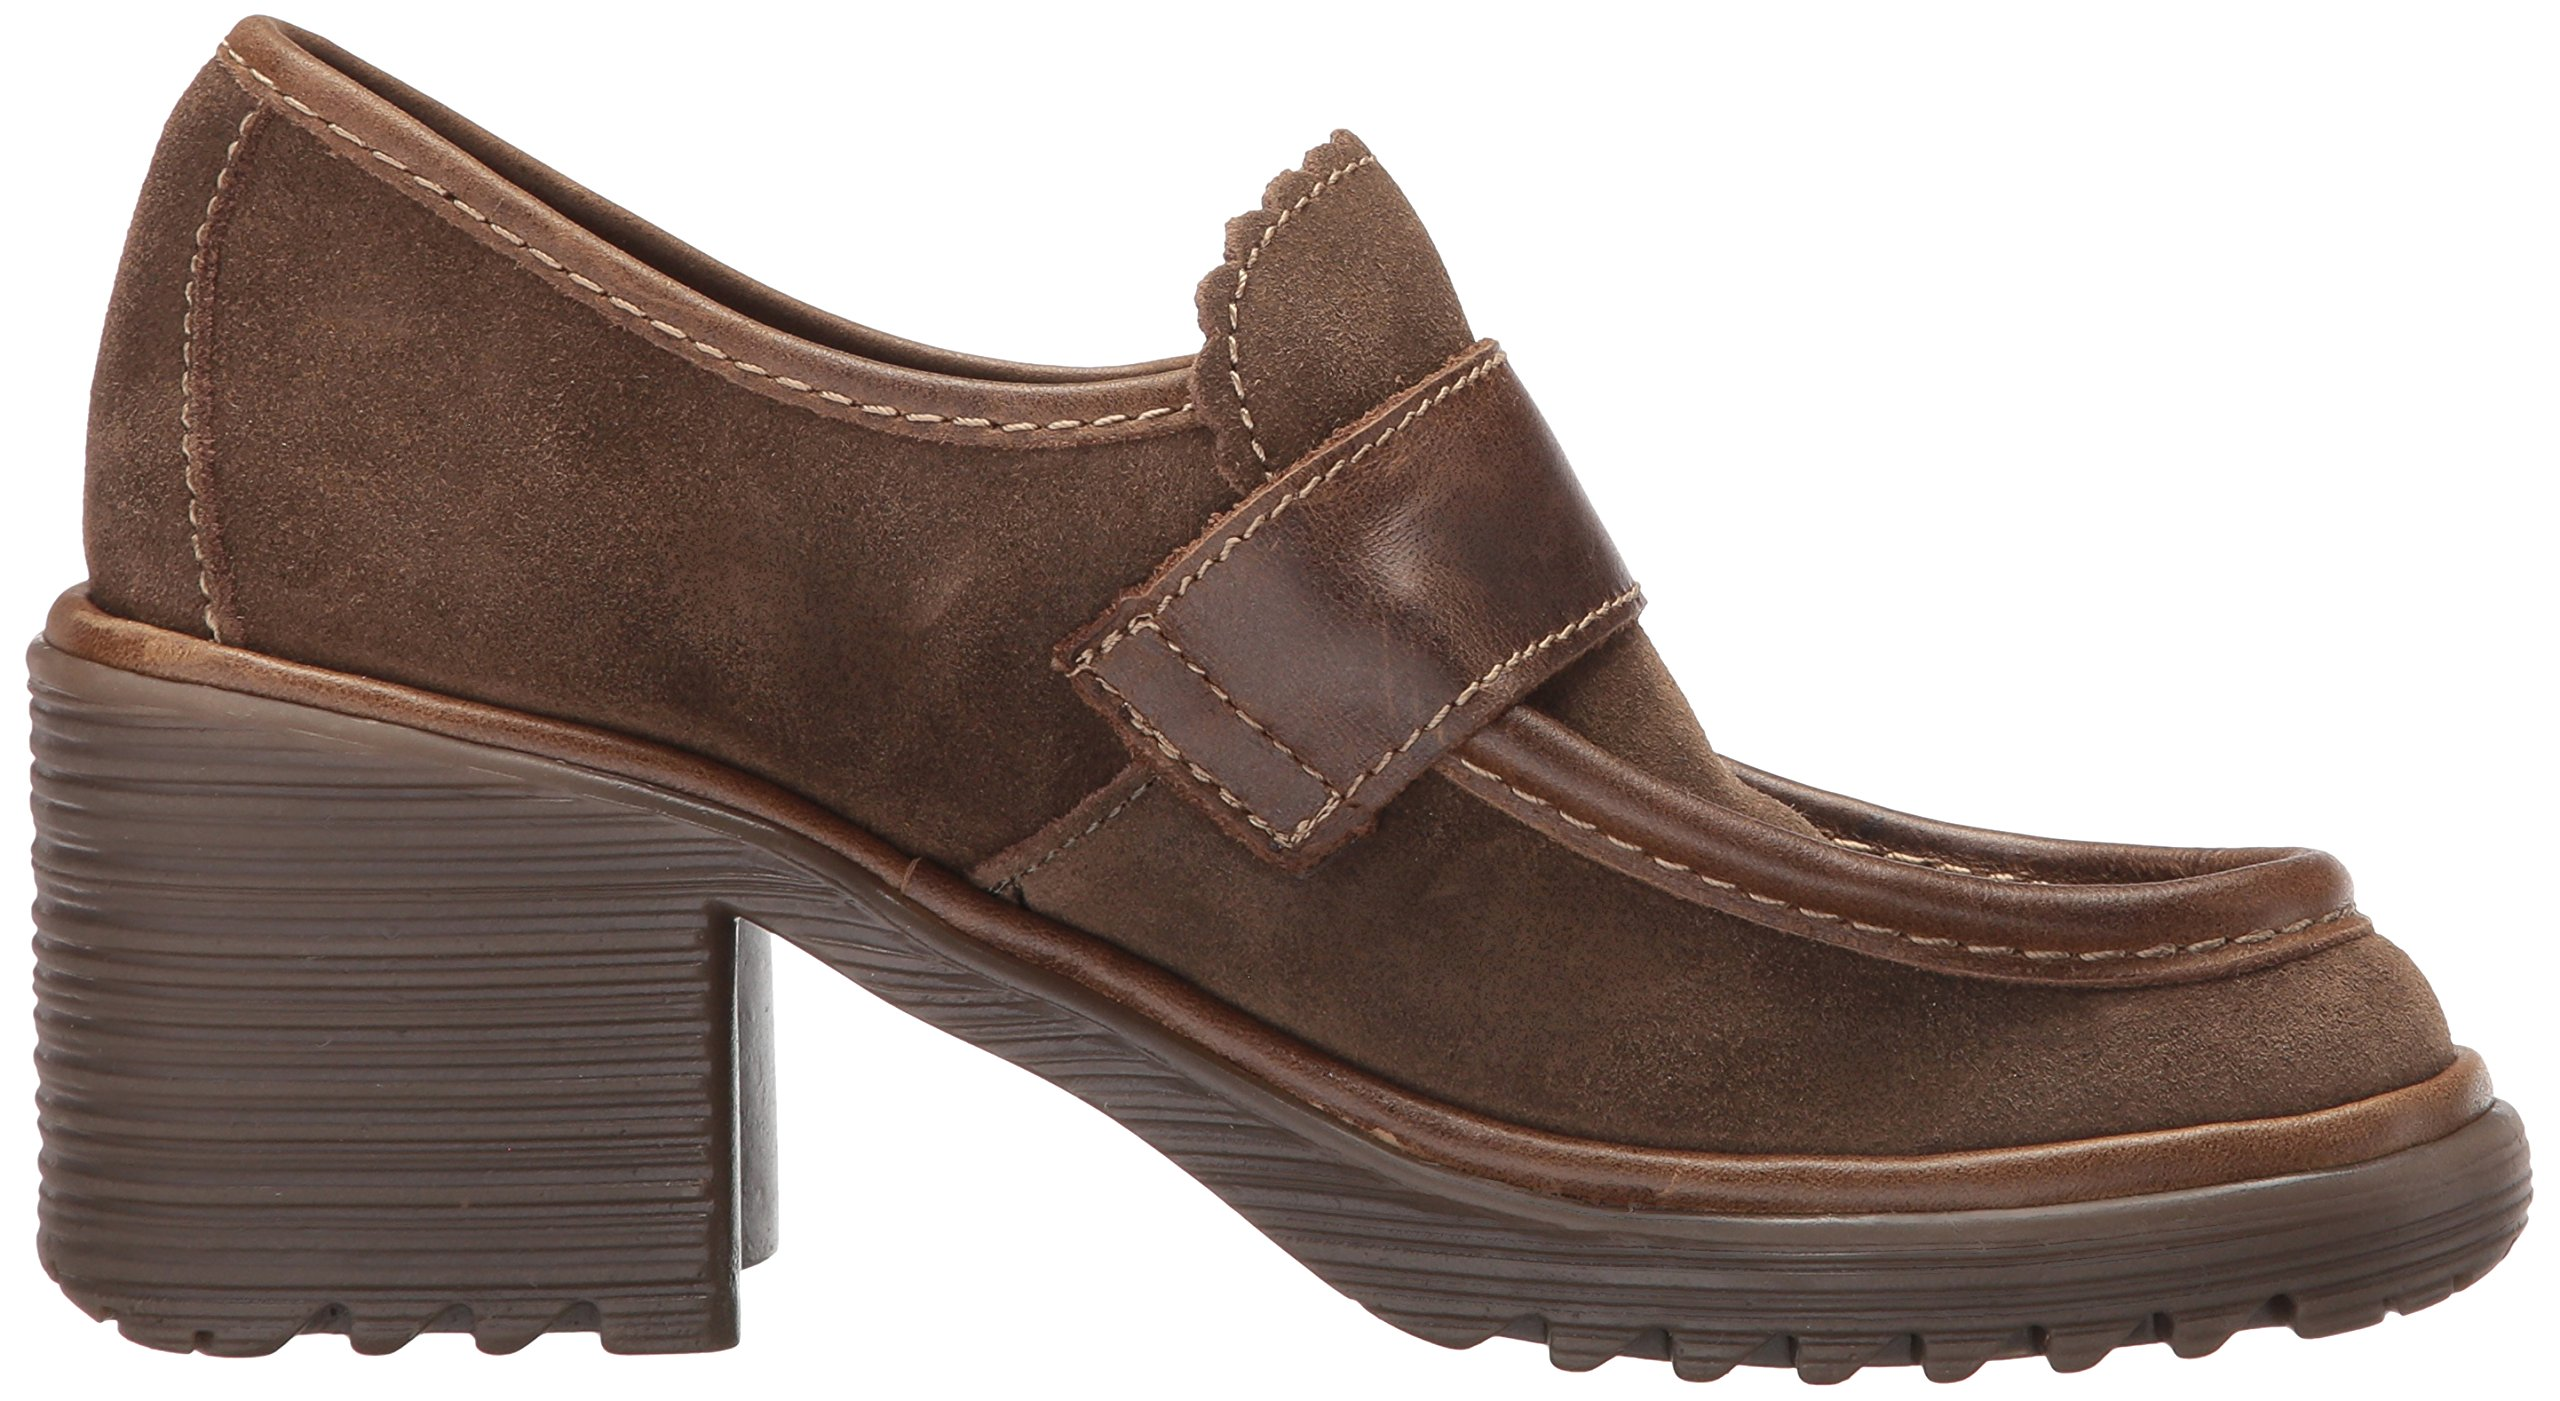 FLY London Women's WEND764FLY Penny Loafer, Sludge/Olive Oil Suede/Rug, 39 M EU (8-8.5 US) by FLY London (Image #7)